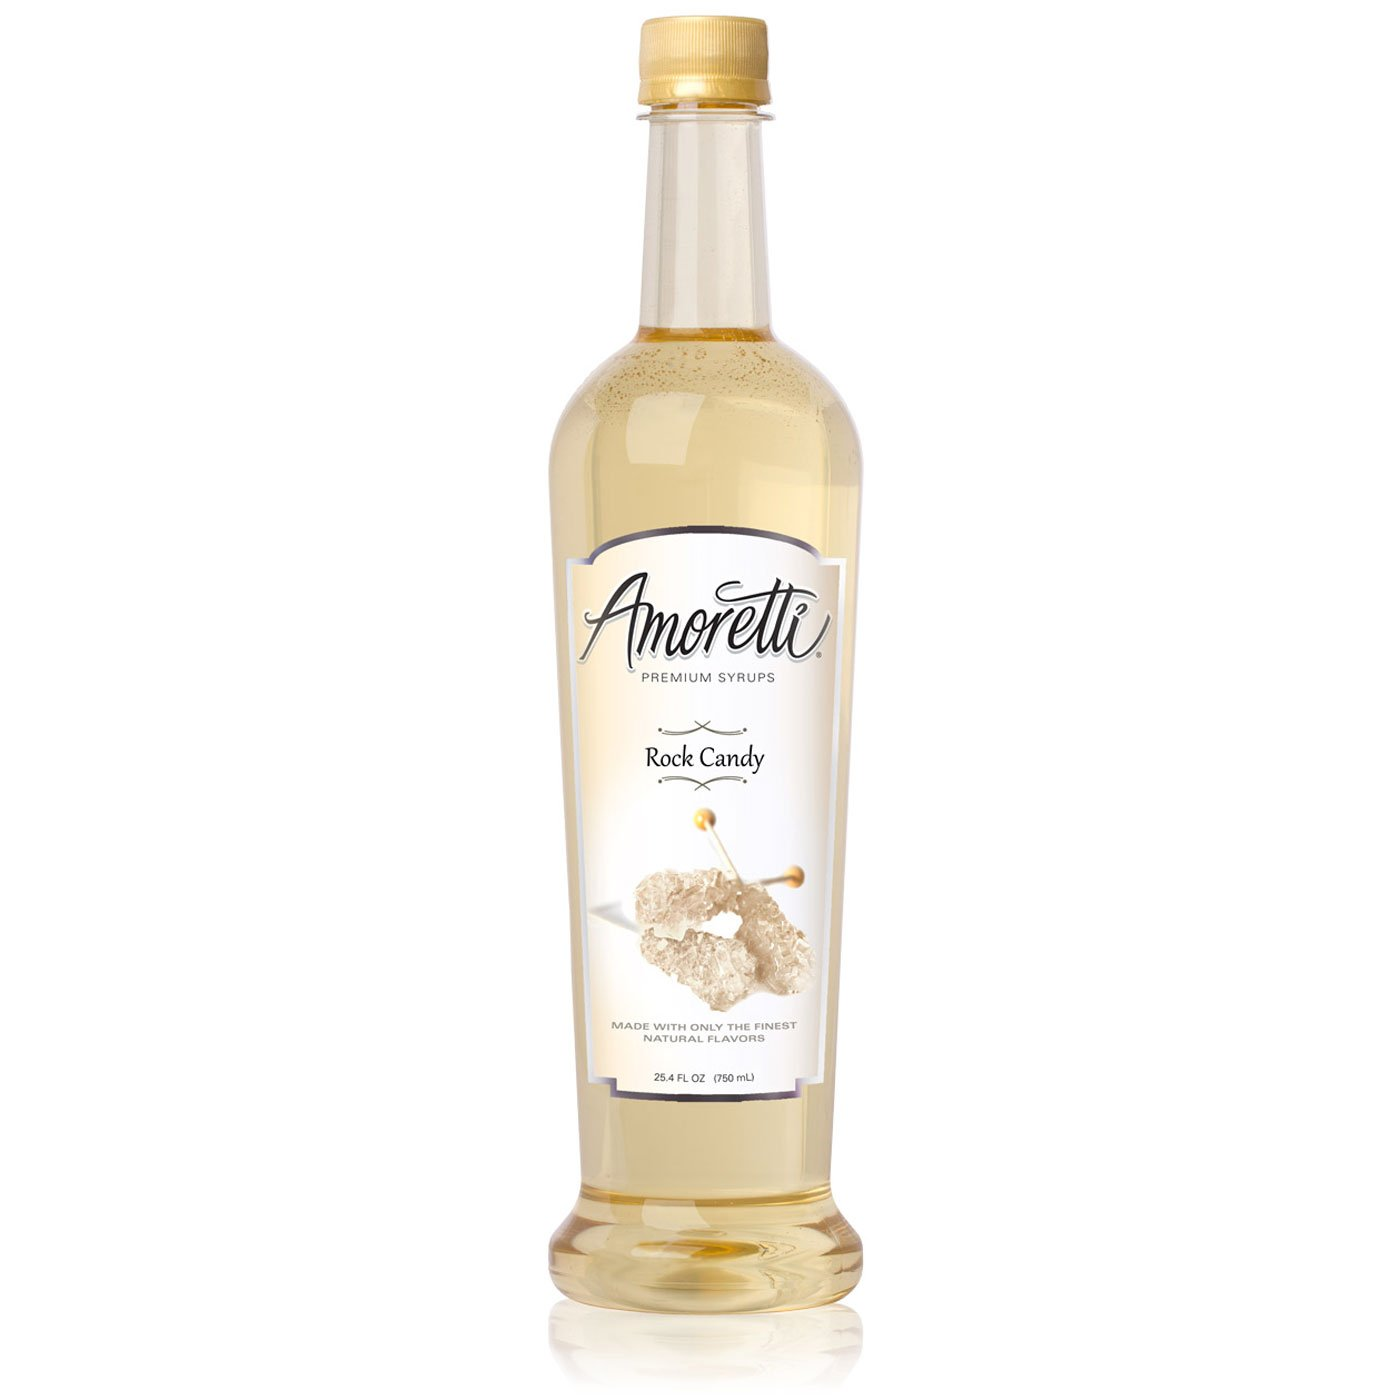 Amoretti Premium Syrup, Rock Candy, 25.4 Ounce by Amoretti (Image #1)